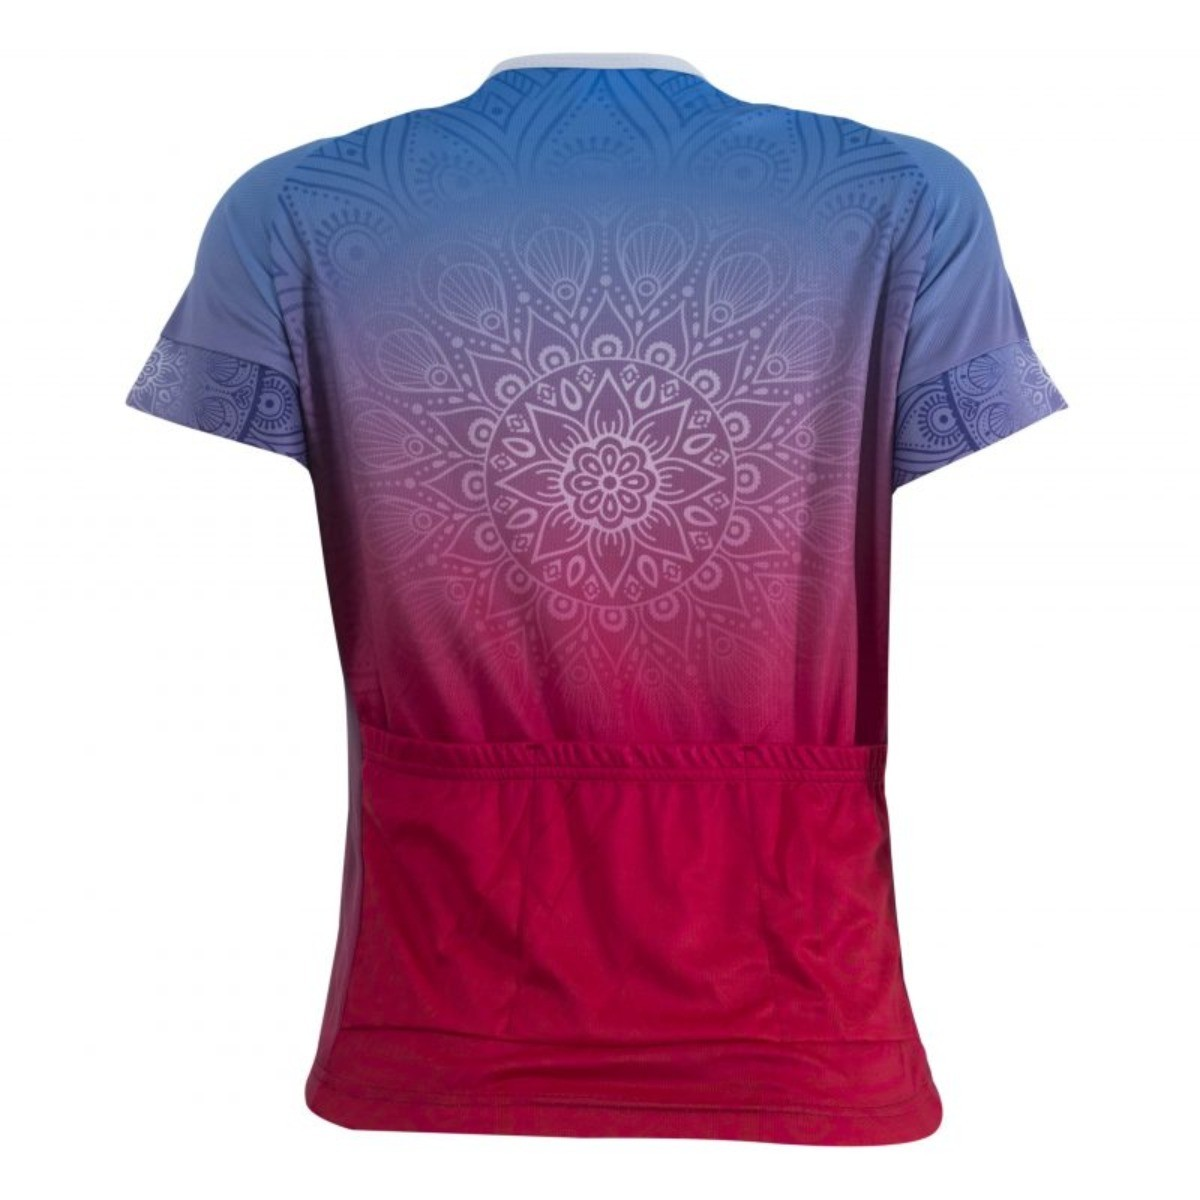 Camisa Ciclismo Mandala Bike Woman Fashion